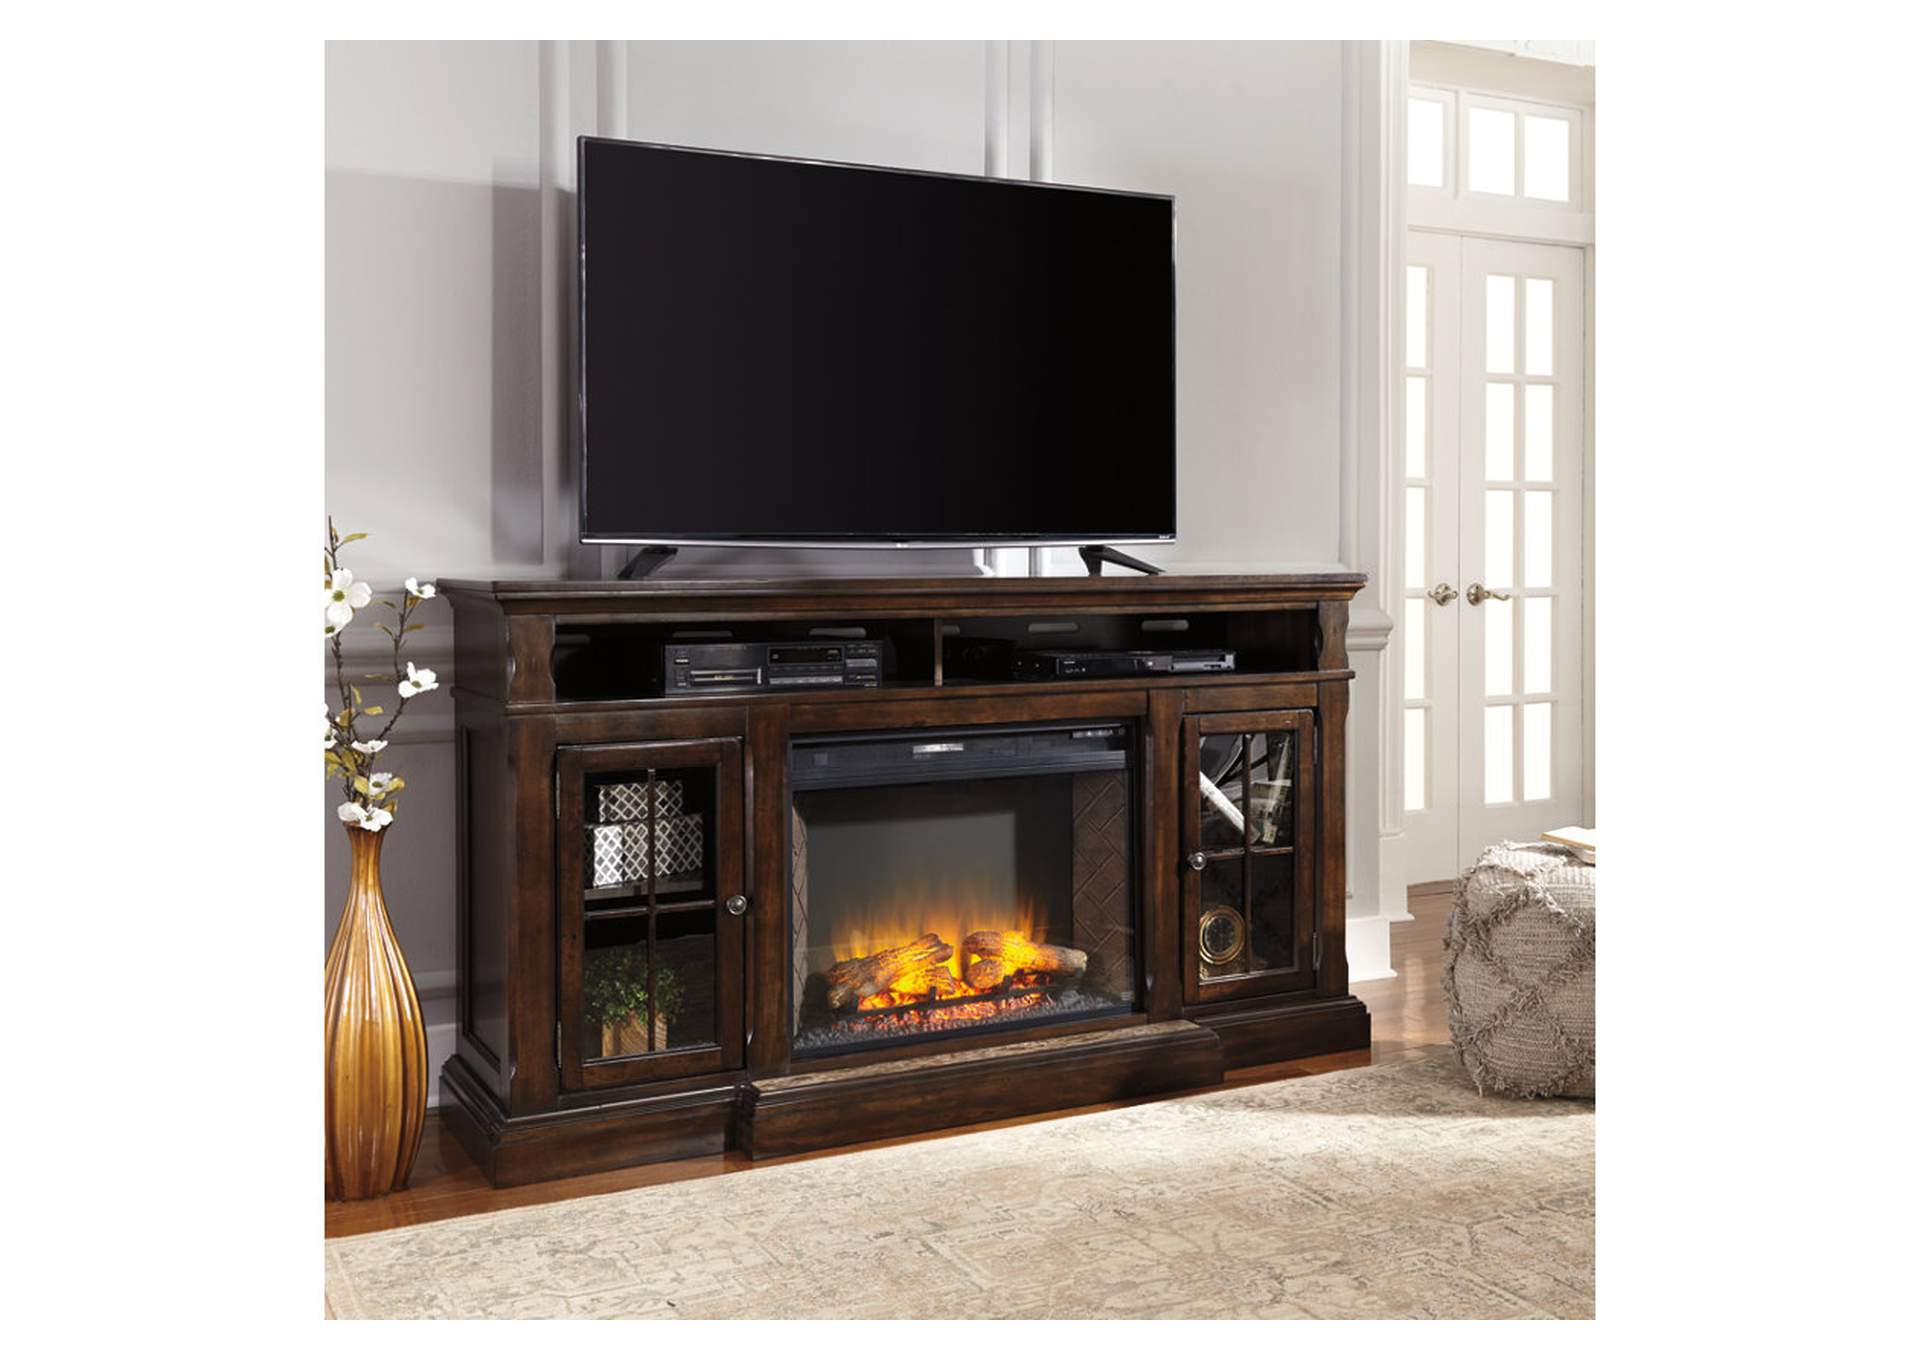 The Furniture Shop Duncanville Tx Roddinton Xl Tv Stand W Fireplace